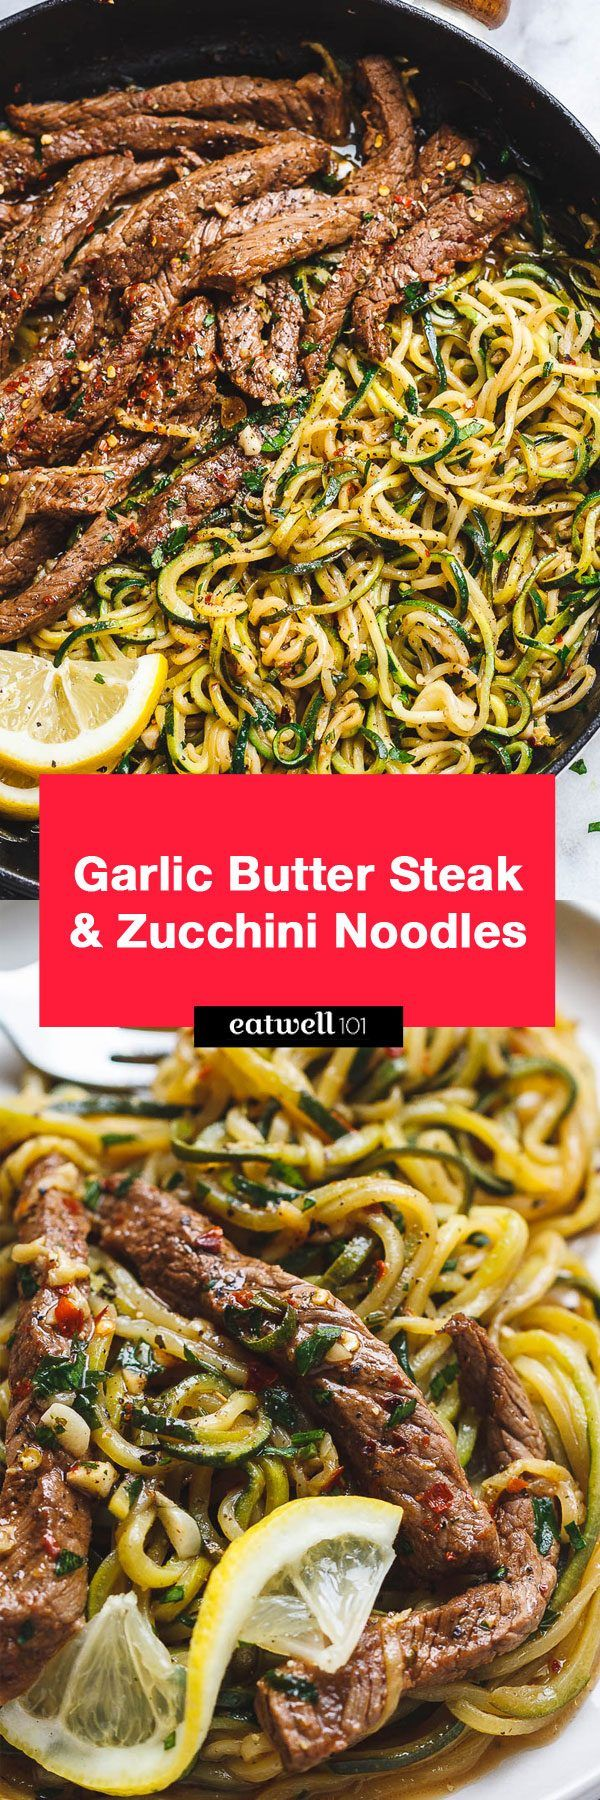 15Minute Garlic Butter Steak with Zucchini Noodles   Delicious juicy marinated steak and zucchini noodles so much flavor and nearly IMPOSSIBLE to mess up  by